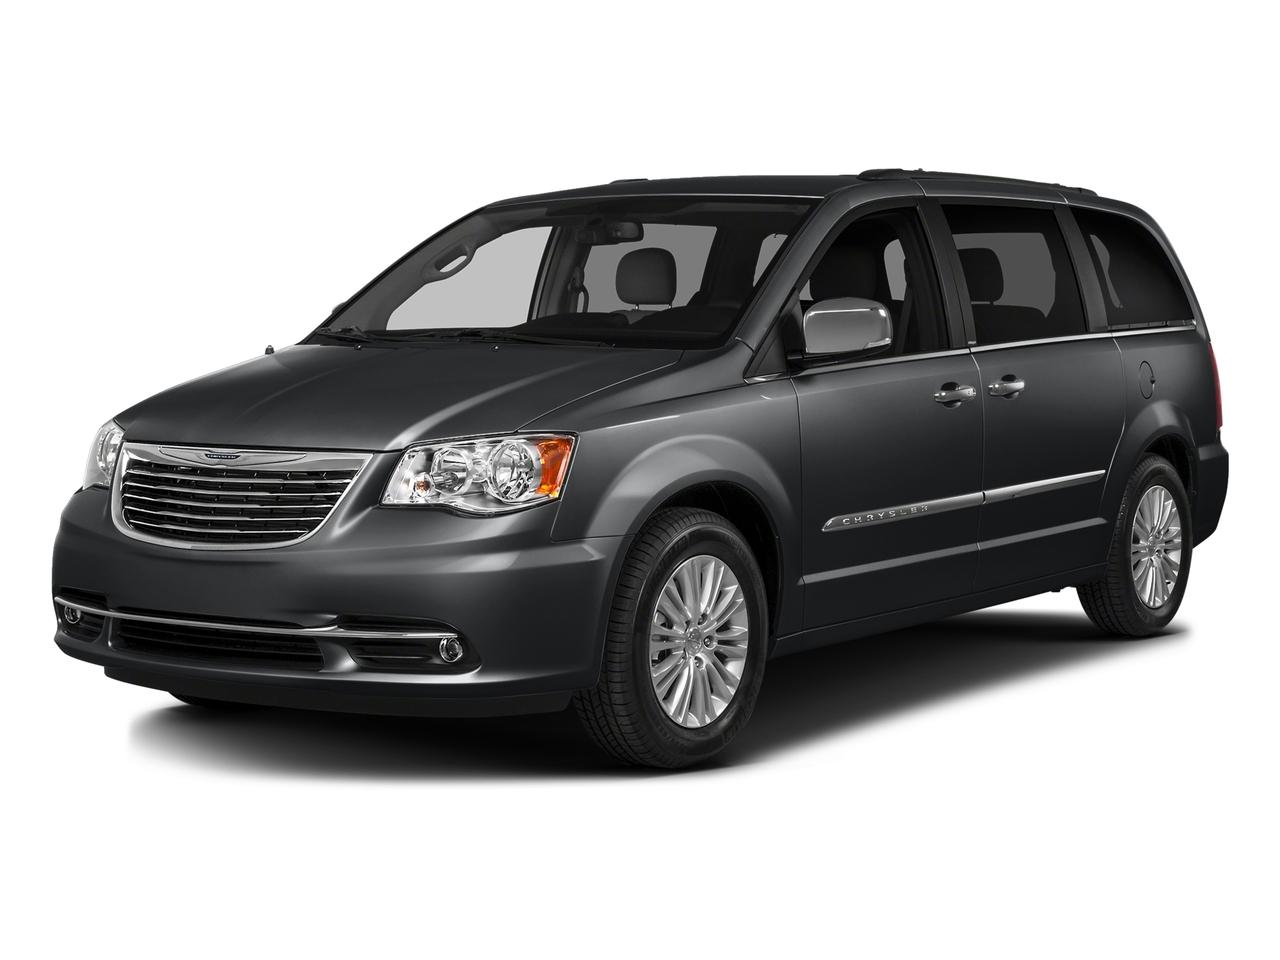 2016 Chrysler Town & Country Vehicle Photo in Doylestown, PA 18902